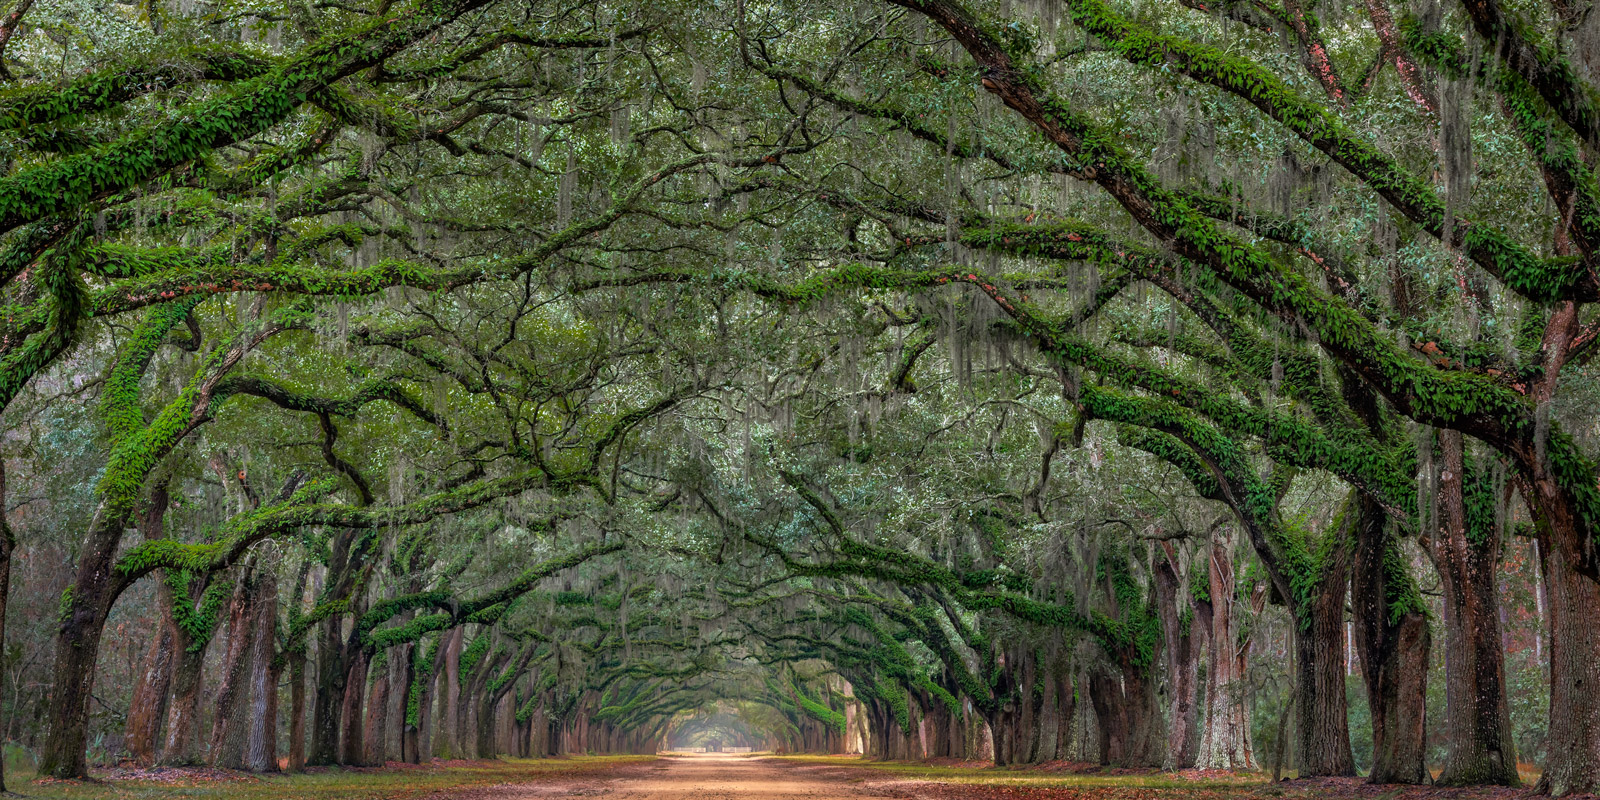 A Limited Edition, Fine Art photograph of an Oak Tree Tunnel over a long driveway at the Wormsloe Plantation in Savannah, Georgia...